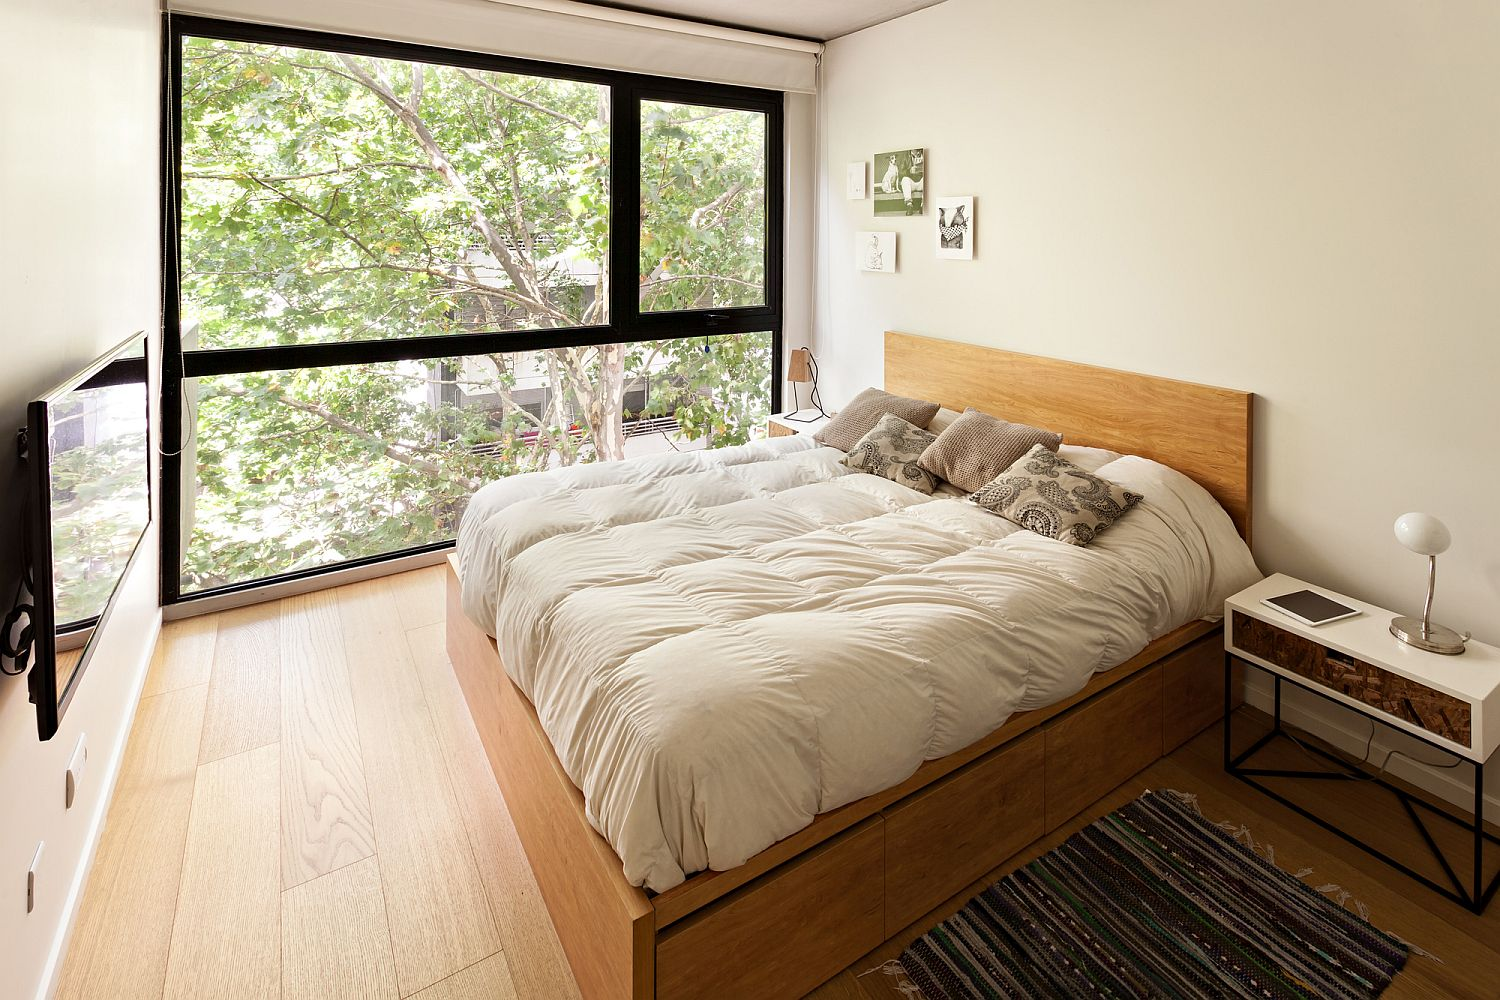 Wooden-flooring-and-walls-in-white-for-the-modern-bedroom-with-glass-windows